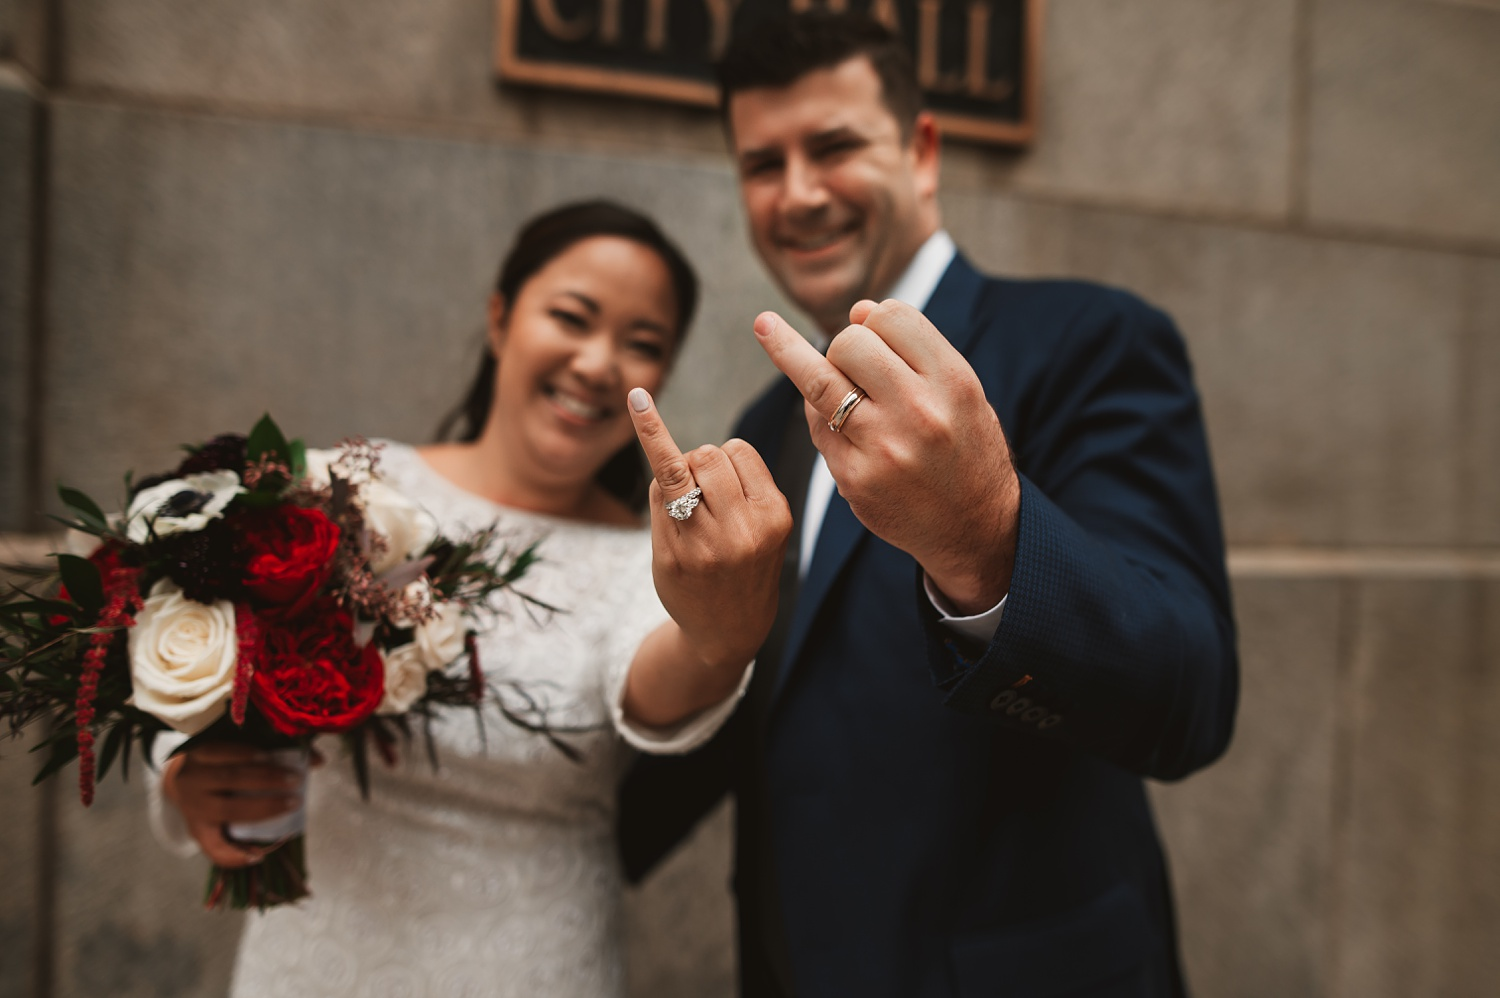 Chicago Courthouse Elopement wedding - The Adamkovi, city hall